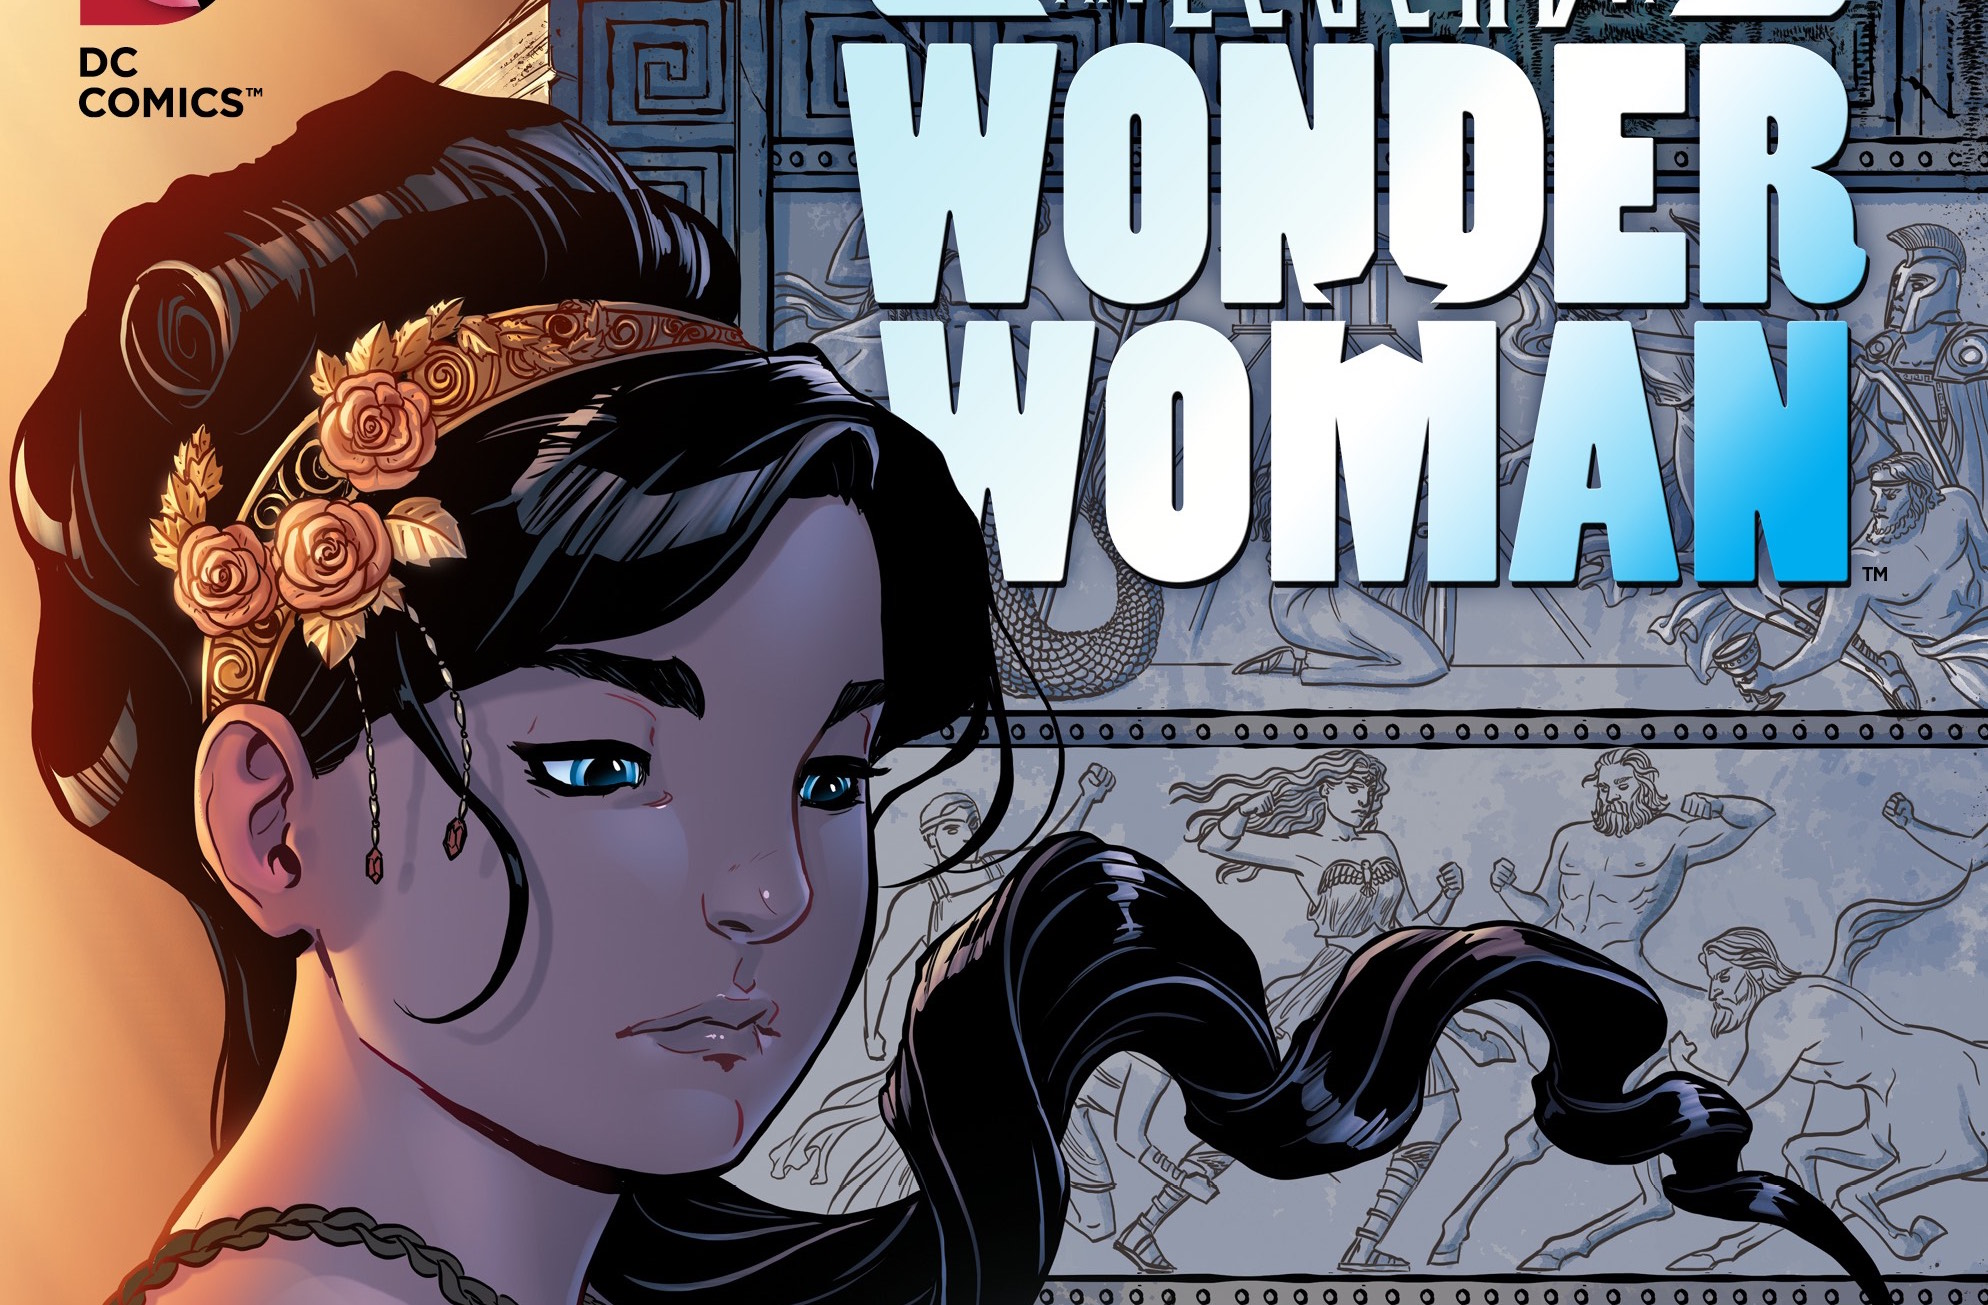 DC Exclusive Preview: The Legend of Wonder Woman #5